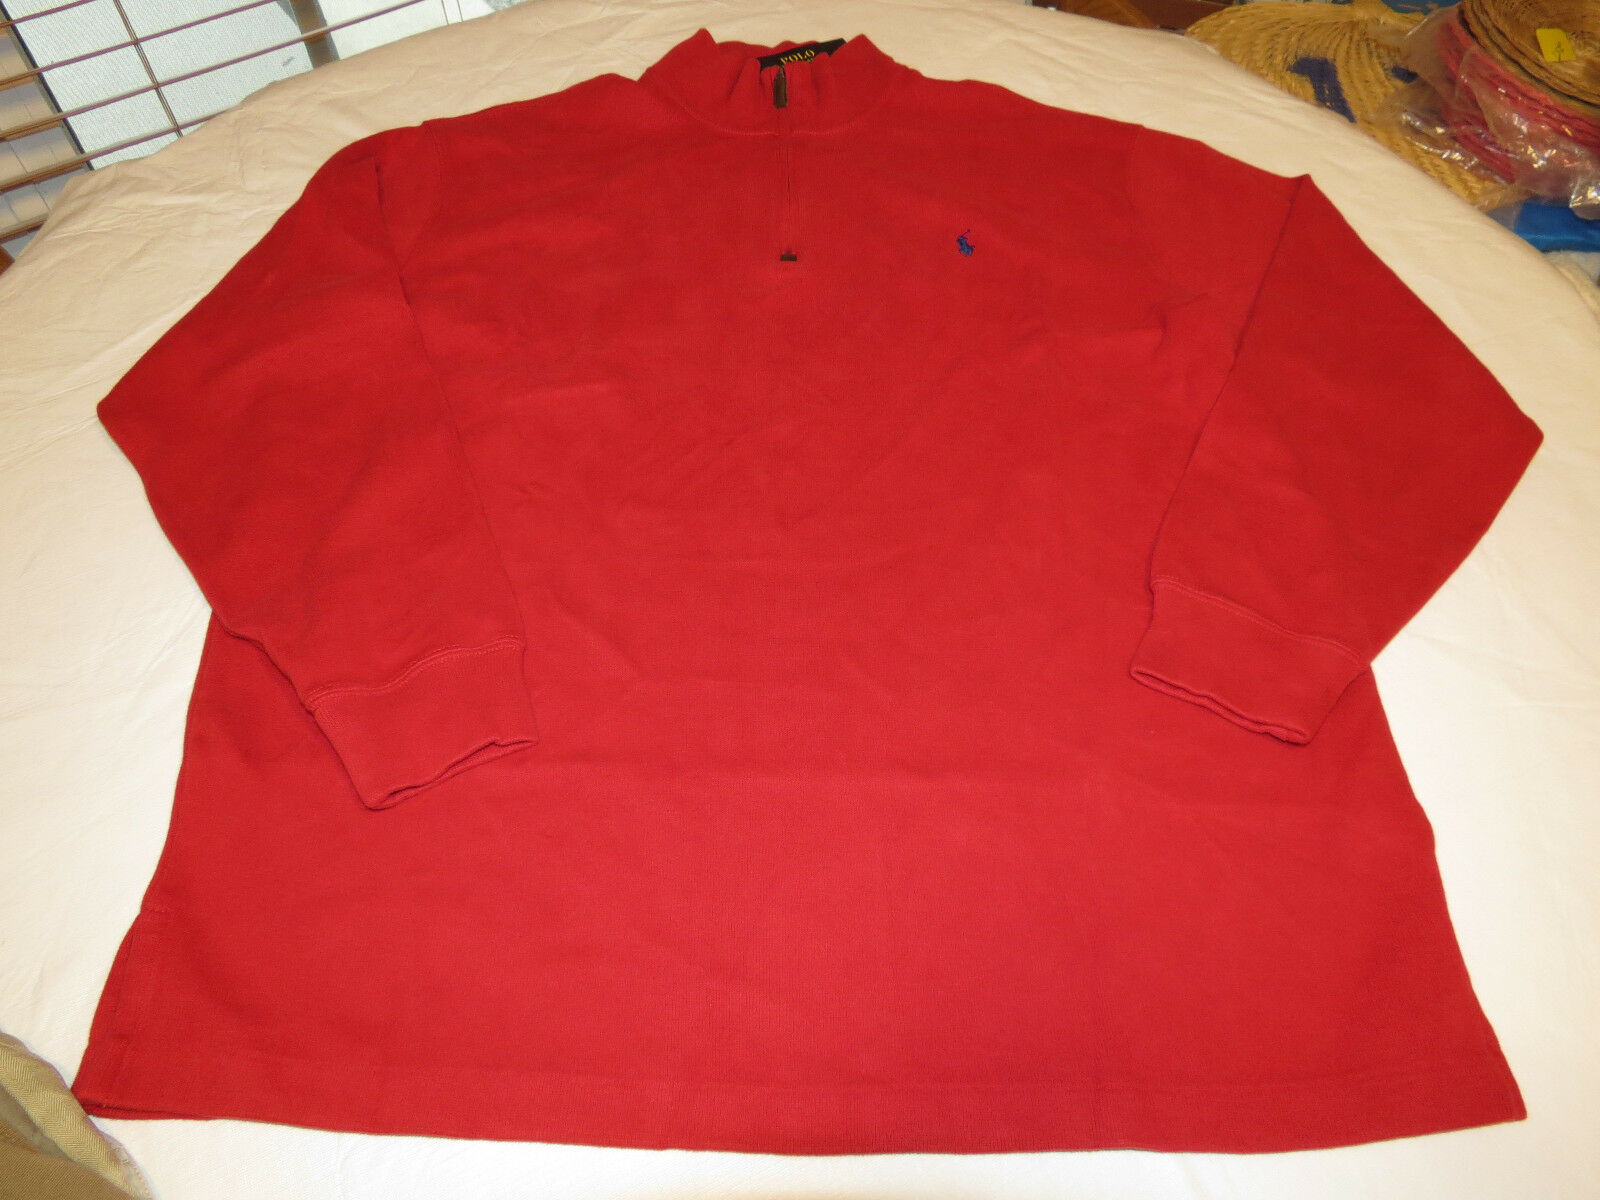 Polo Ralph Lauren sweater sweater Lauren pull over shirt Big & Tall 2XLT TALL Uomo 7115239 rosso e48ab5